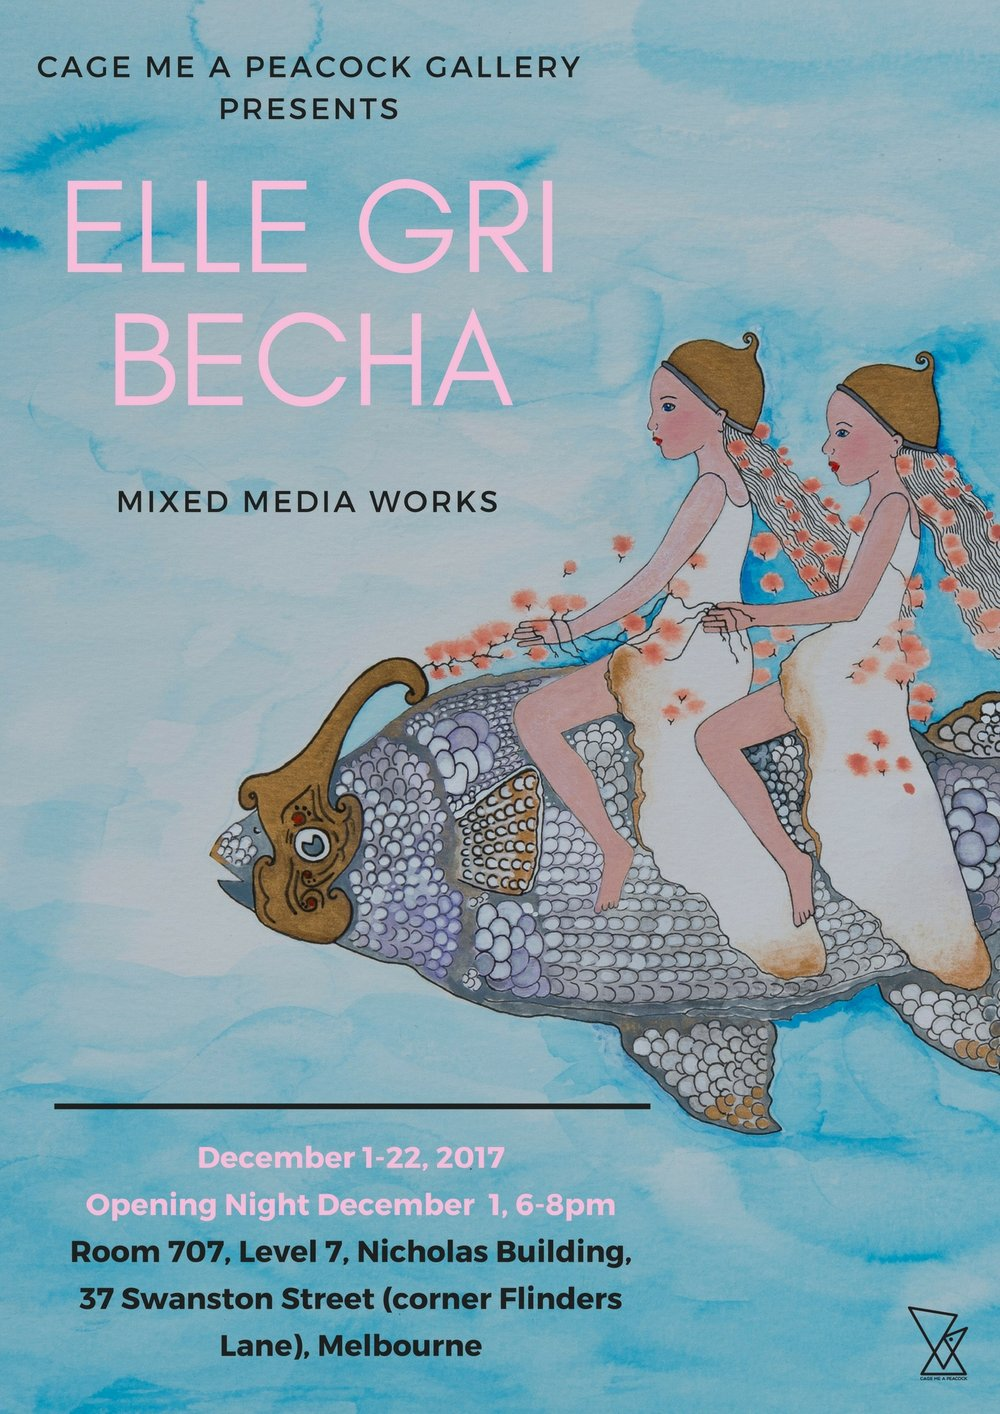 Elle Gri Becha 'Playgrounds in Watercolours' - 1 December - 22 December 2017Opening celebrations 6-8pm 1 DecemberPlaygrounds in Watercolour, explores the concept of characters and symbols that develop into narratives.